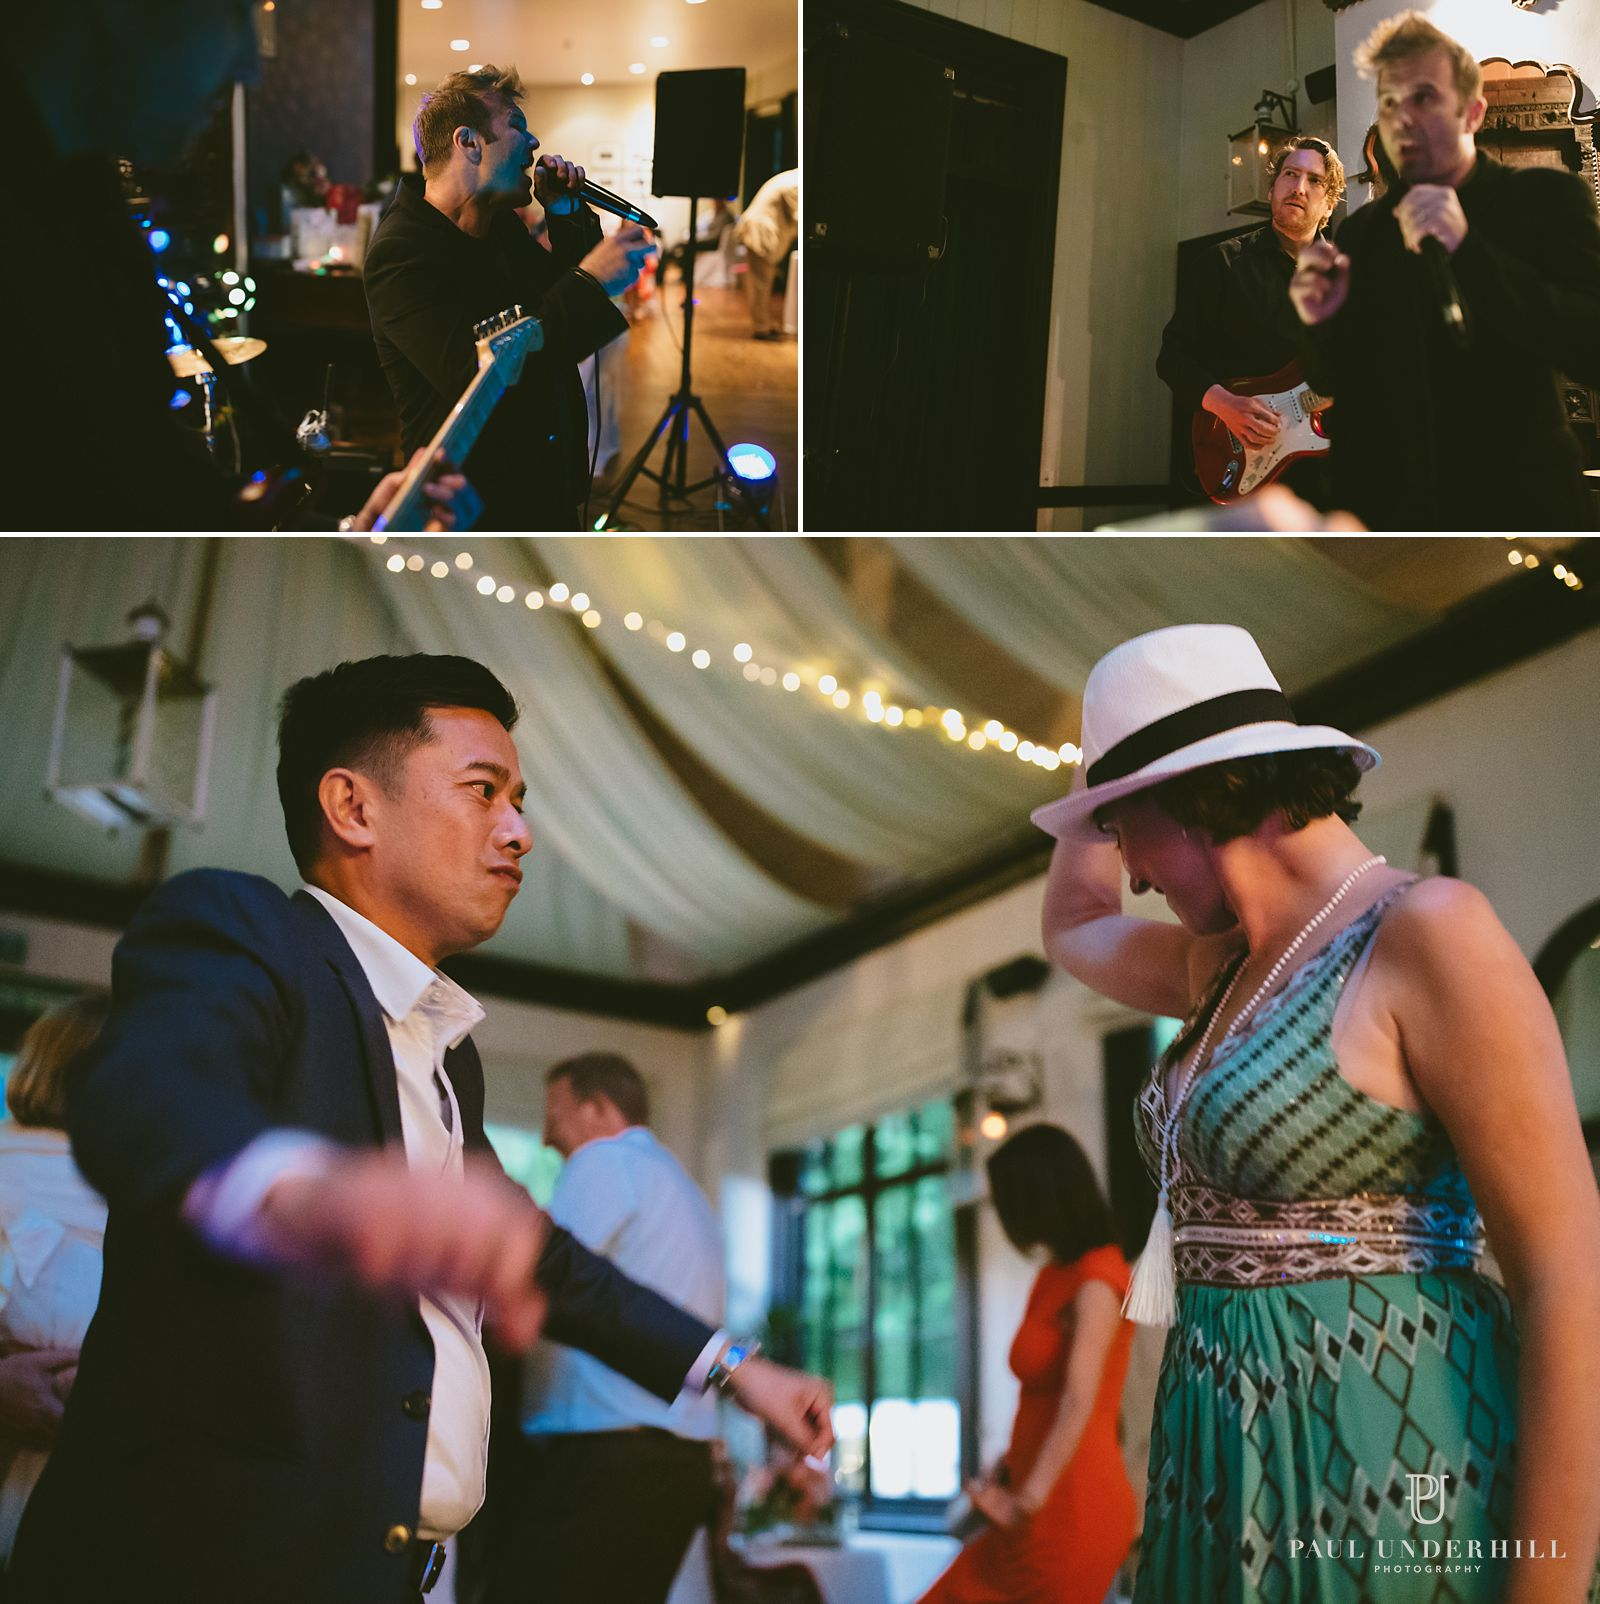 Live band and guests dancing at wedding